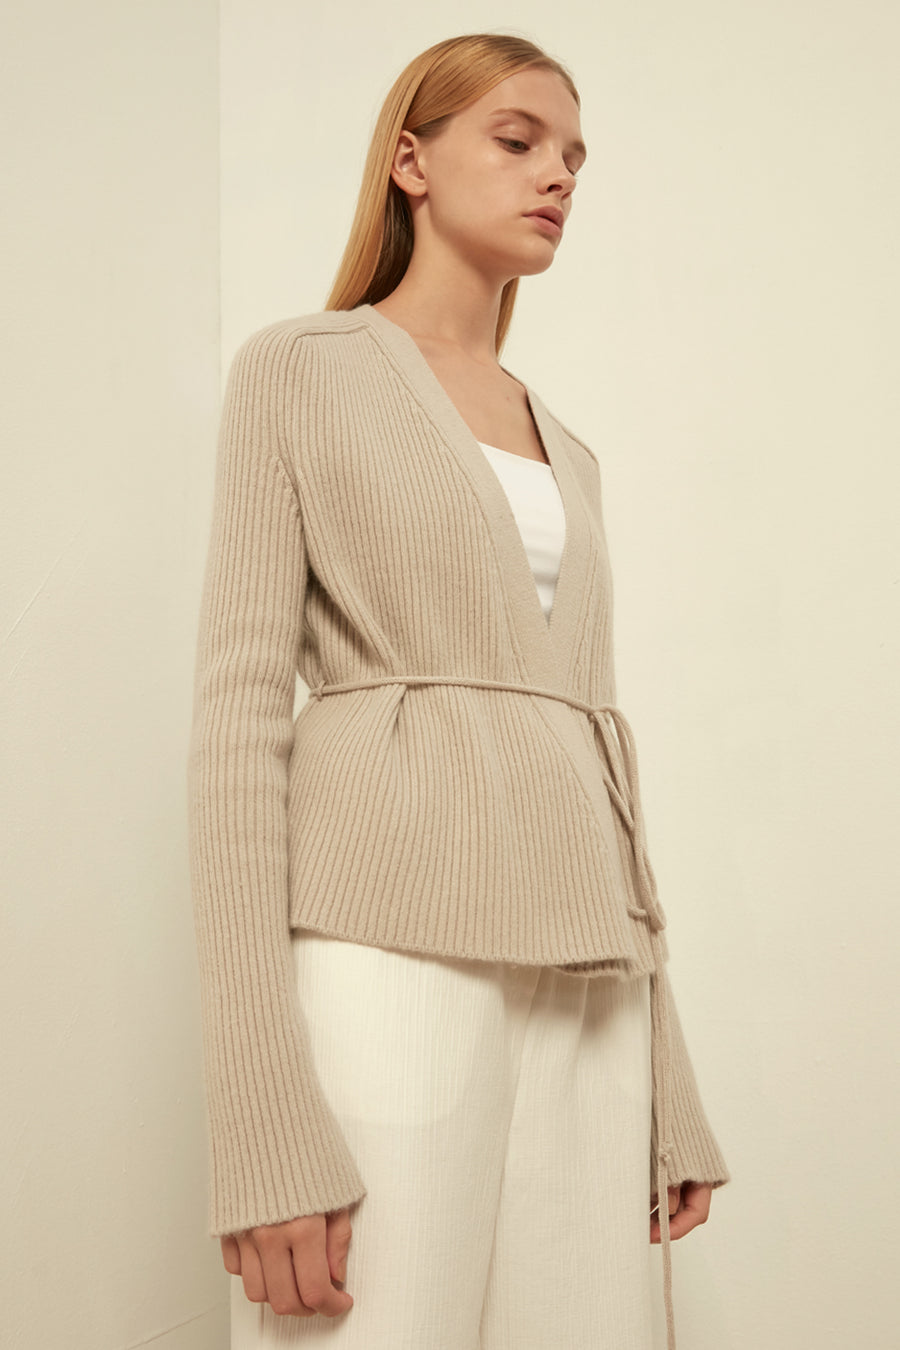 Ribbed wool cardigan - Zelle Studio